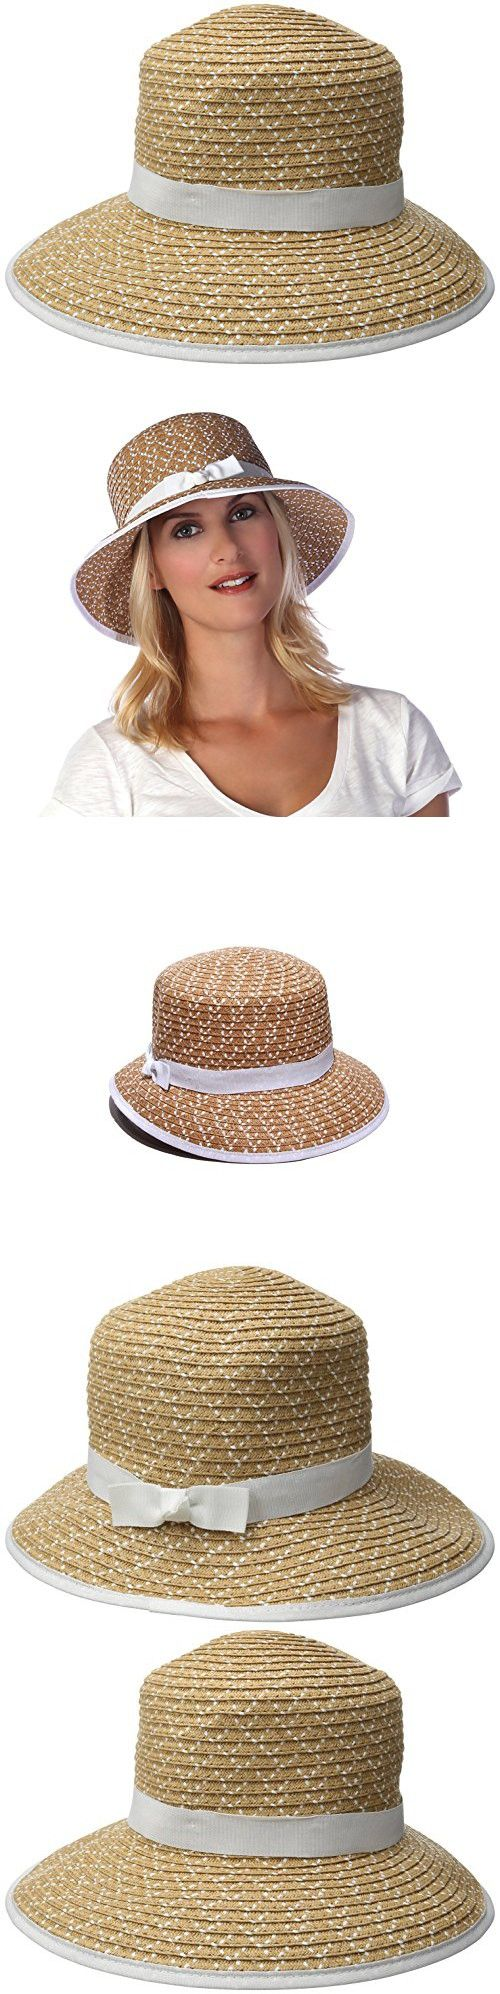 Physician Endorsed Women's Pitch Perfect Straw Sun Hat Rated UPF 50+, Natural/White, One Size